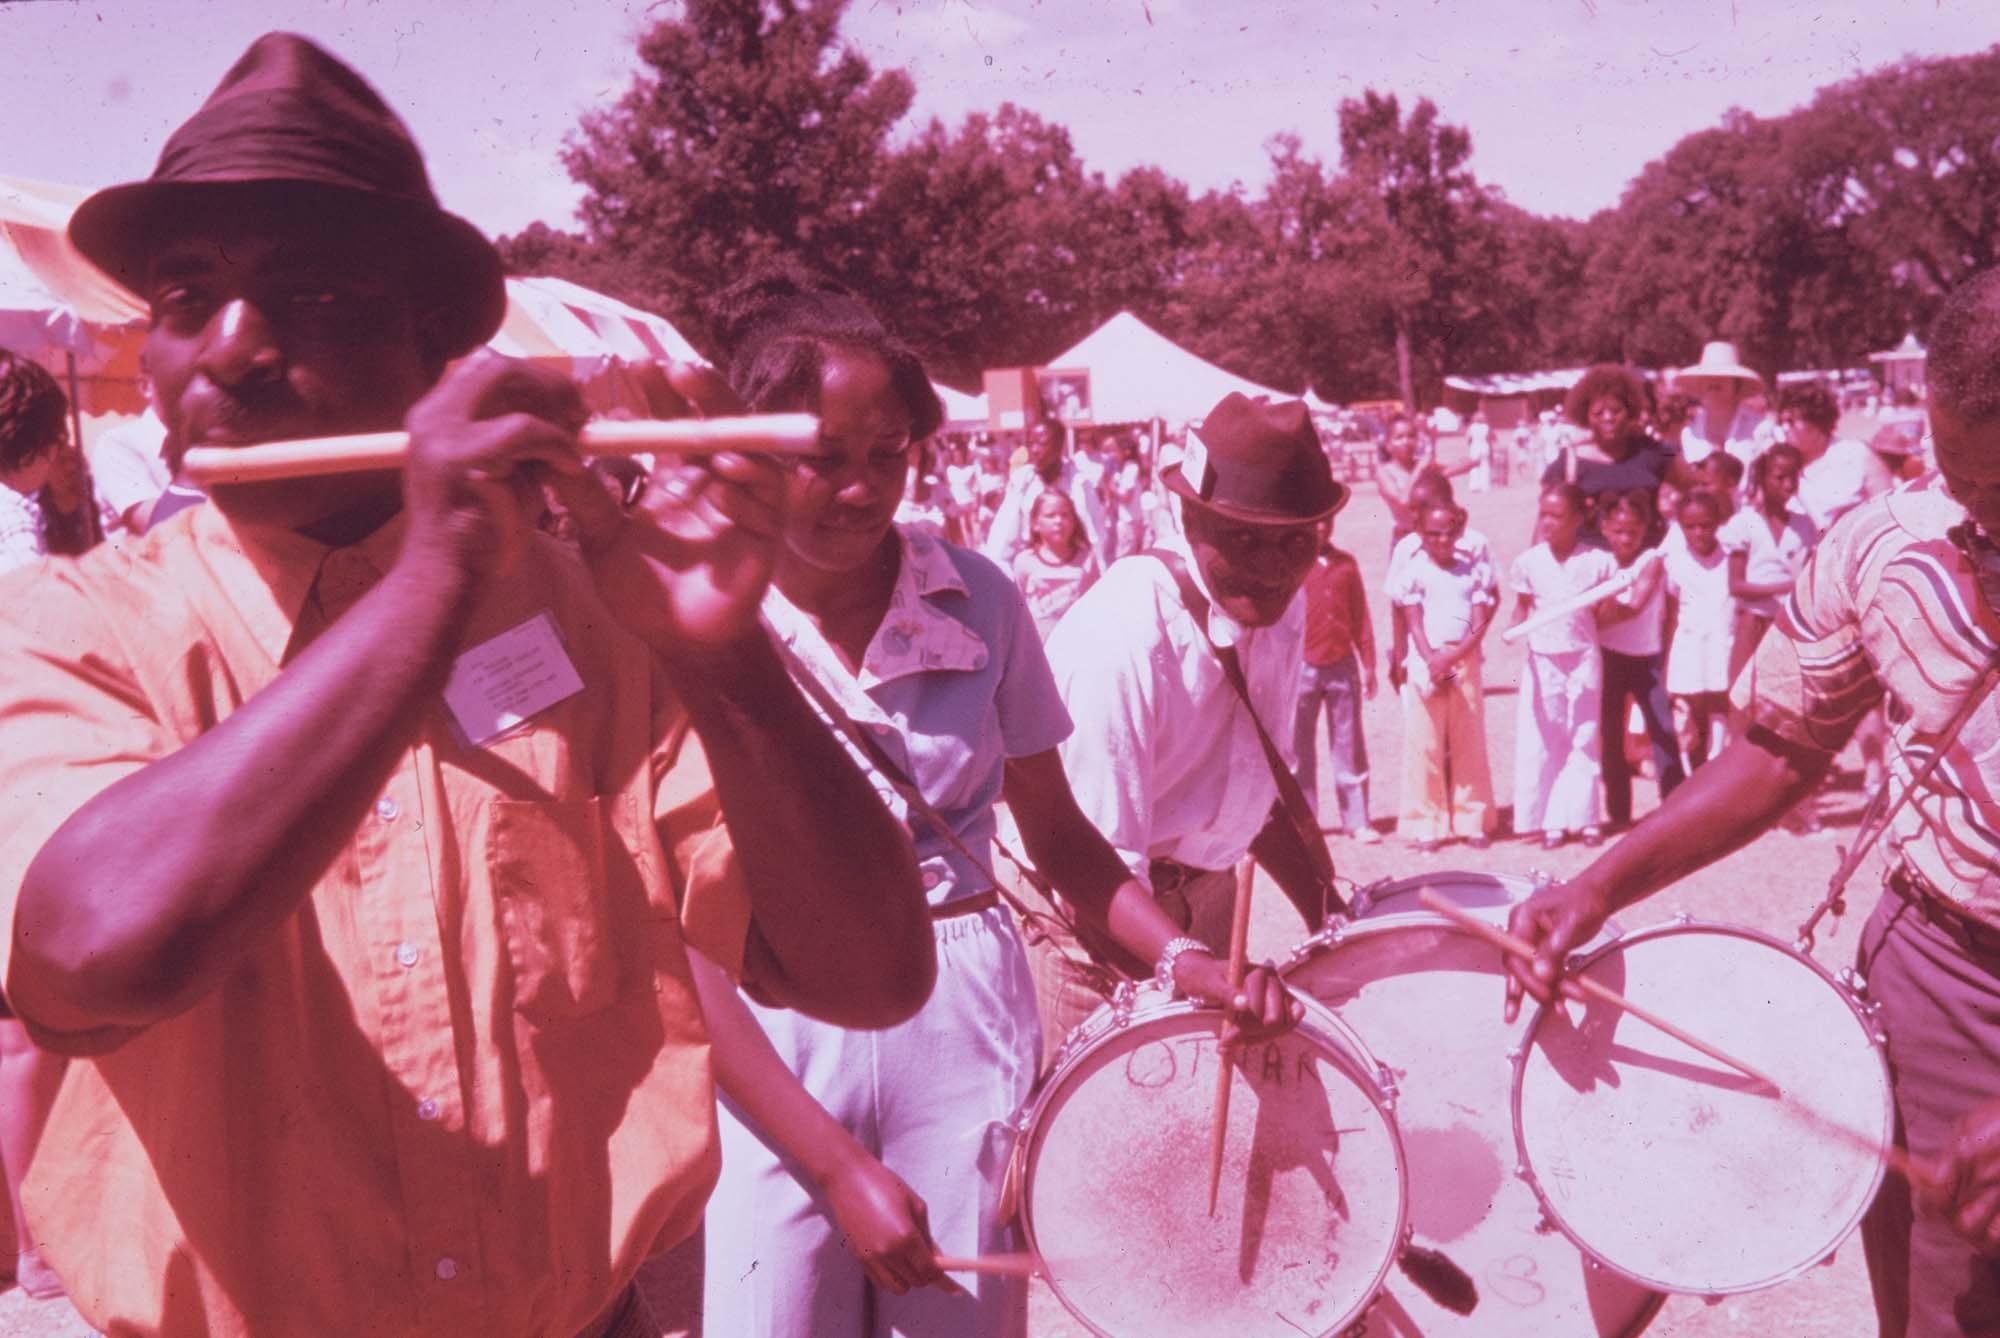 Photo of drummers at 1974 Festival of American Folklife. Photo is old and has a purple hue from aging.